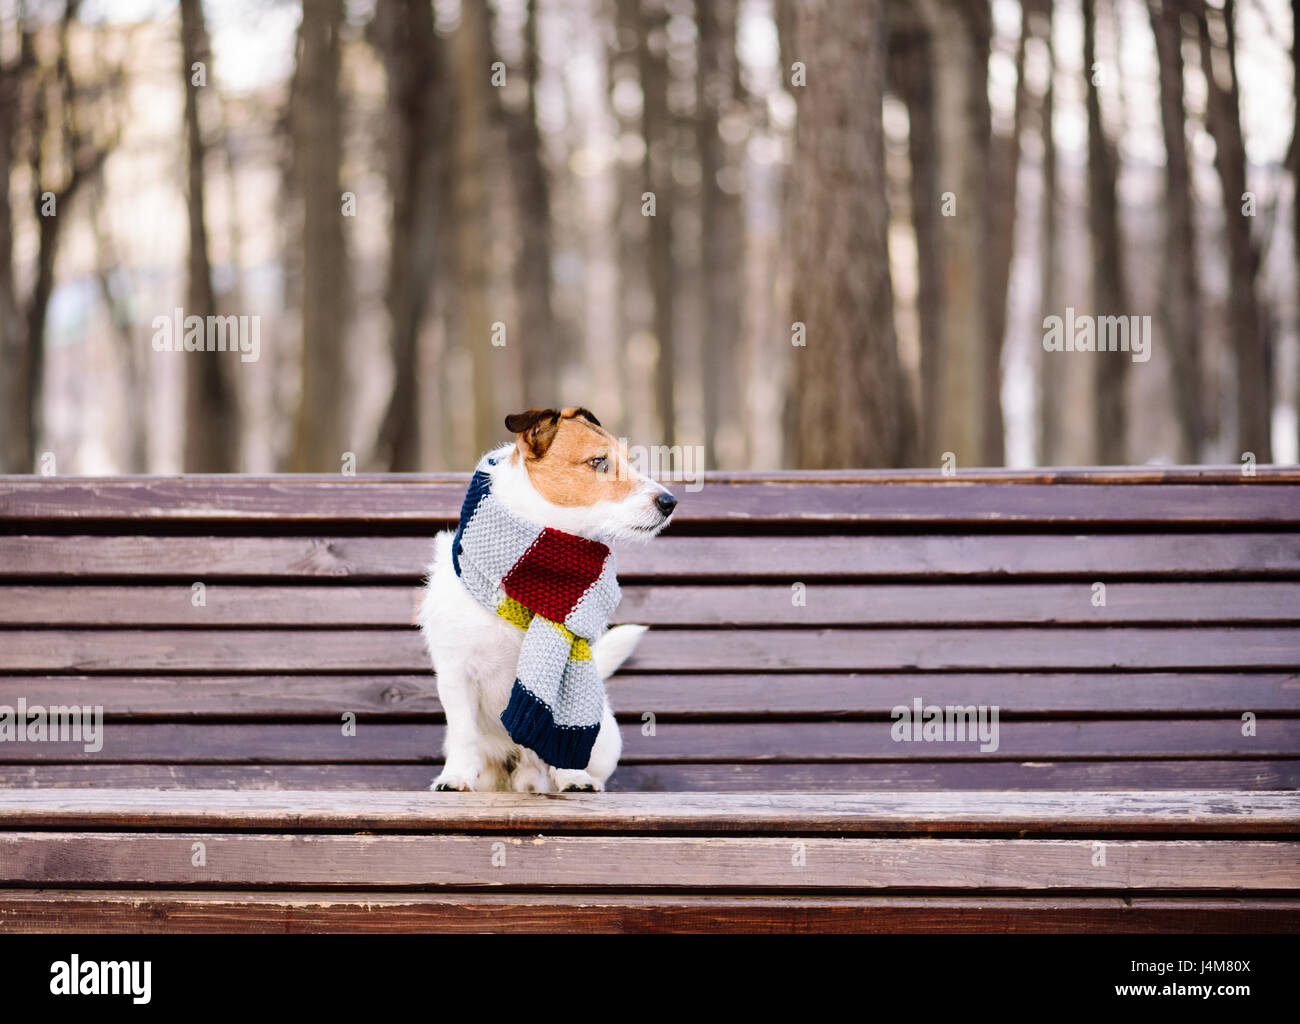 Dog wearing cozy warm scarf sitting on bench at park - Stock Image